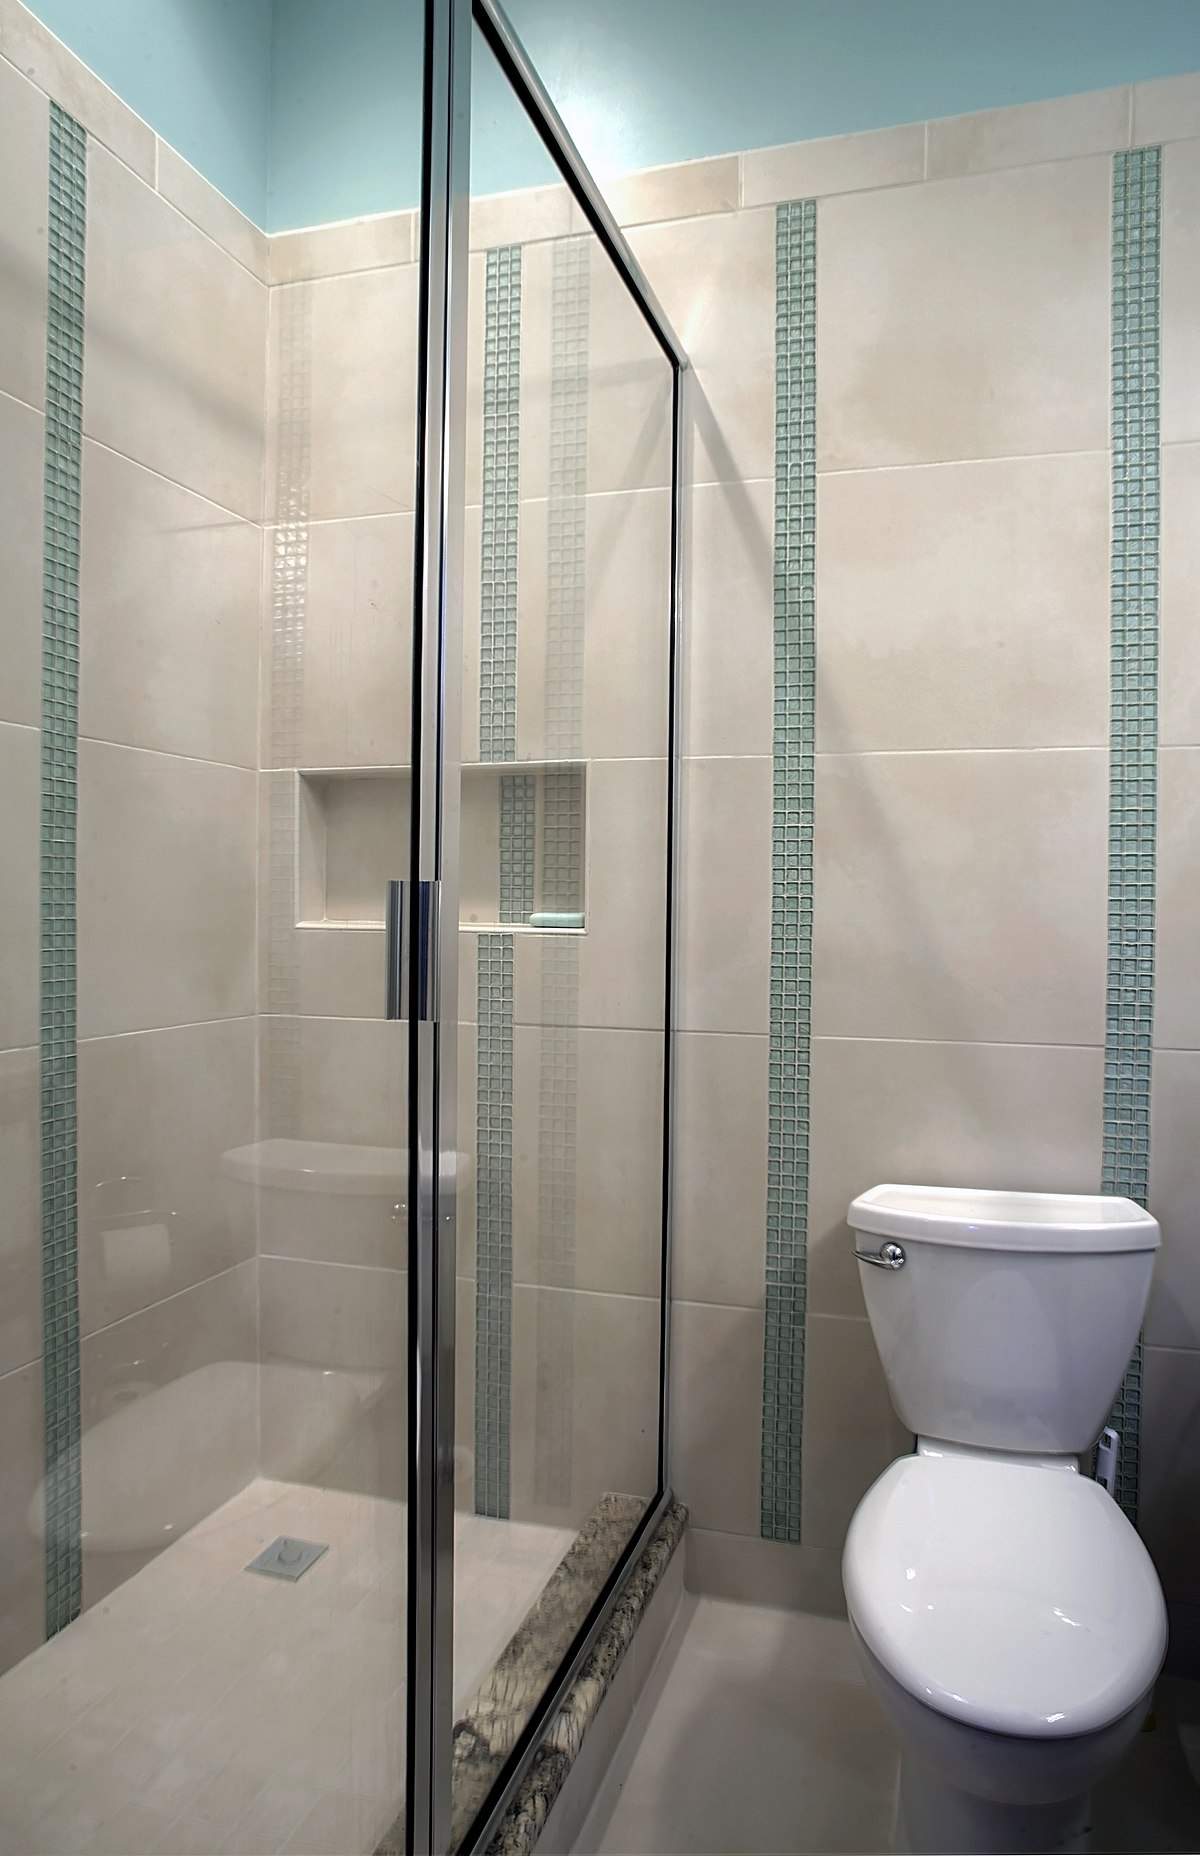 prev shower frameless bath glass foremost sliding tub marina mrss product collection doors